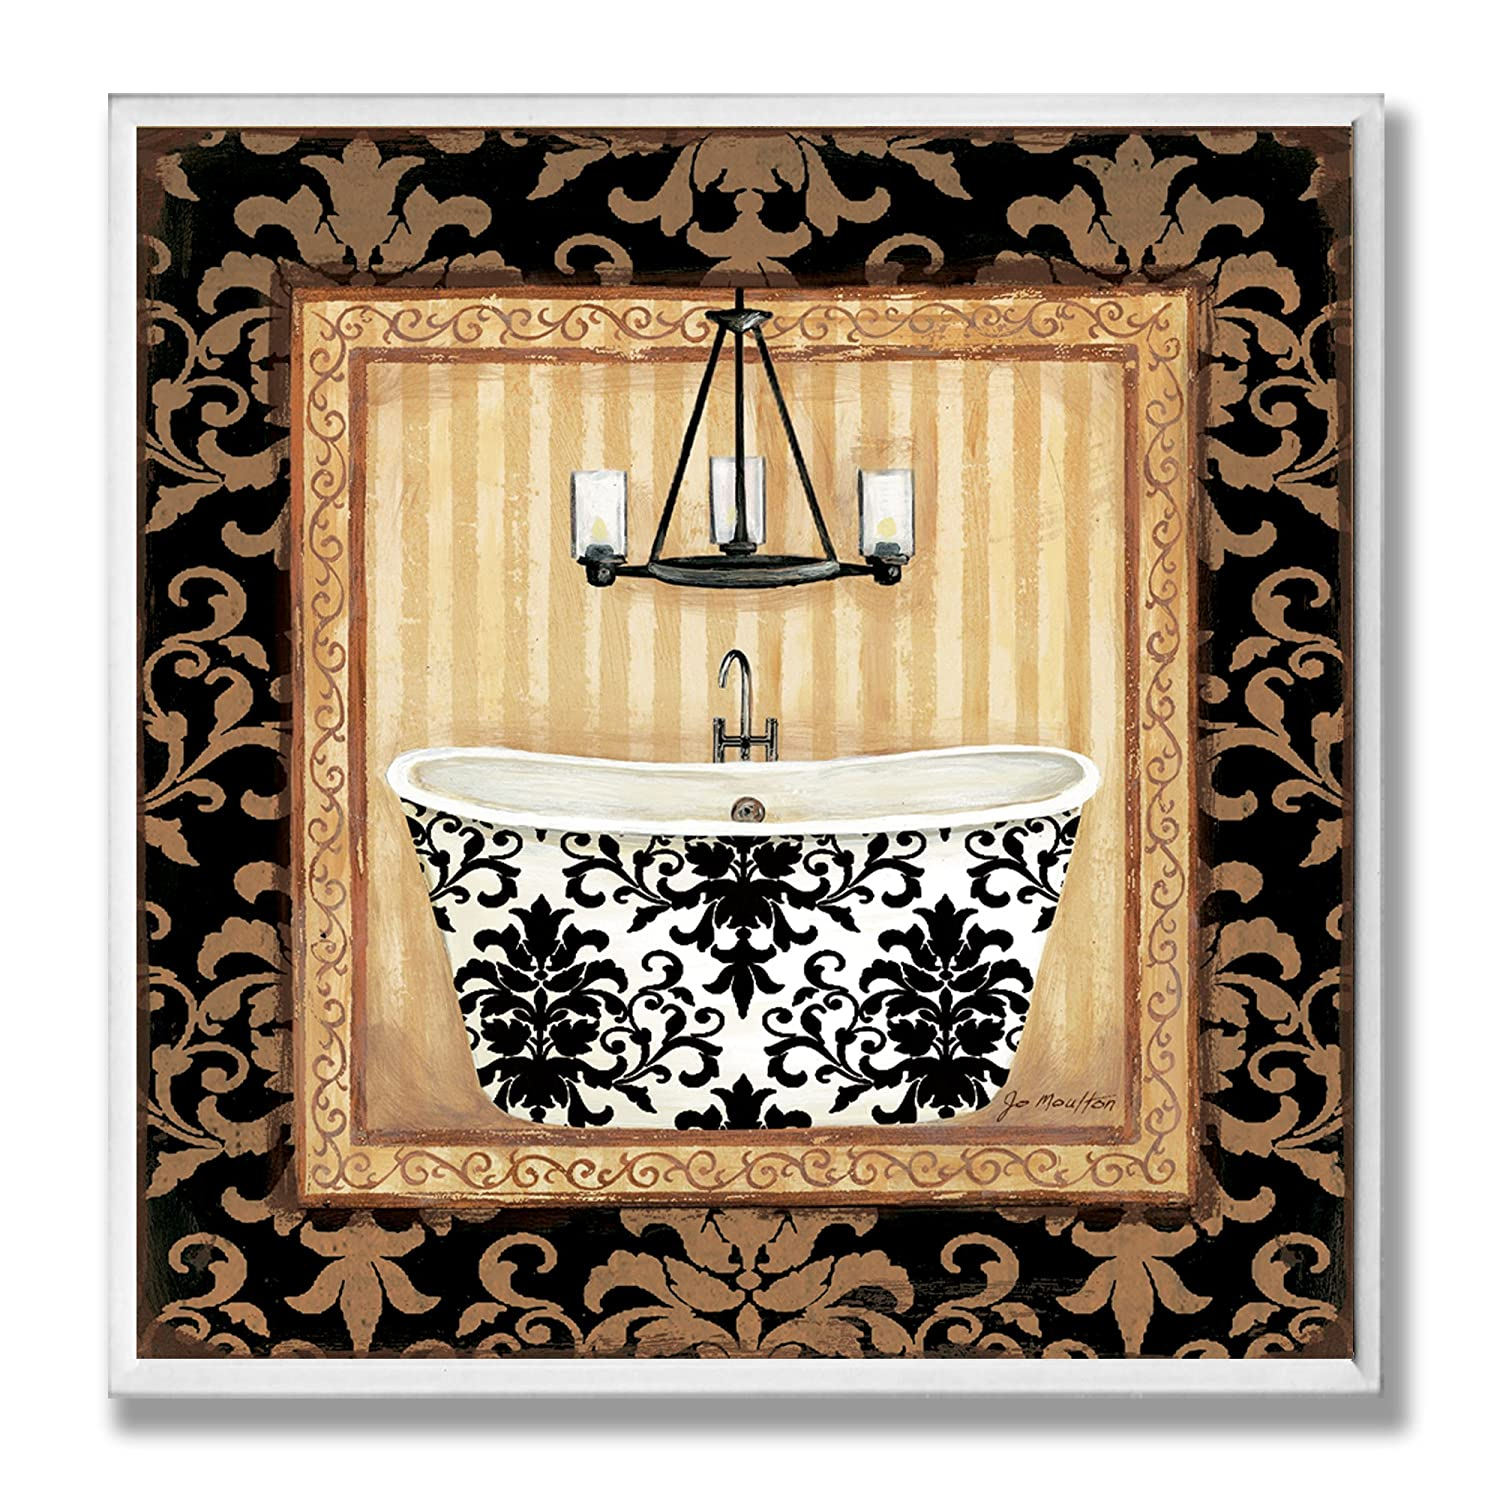 The Stupell Home Decor Collection Vanity with Black Floral Floor Bathroom Wall Plaque